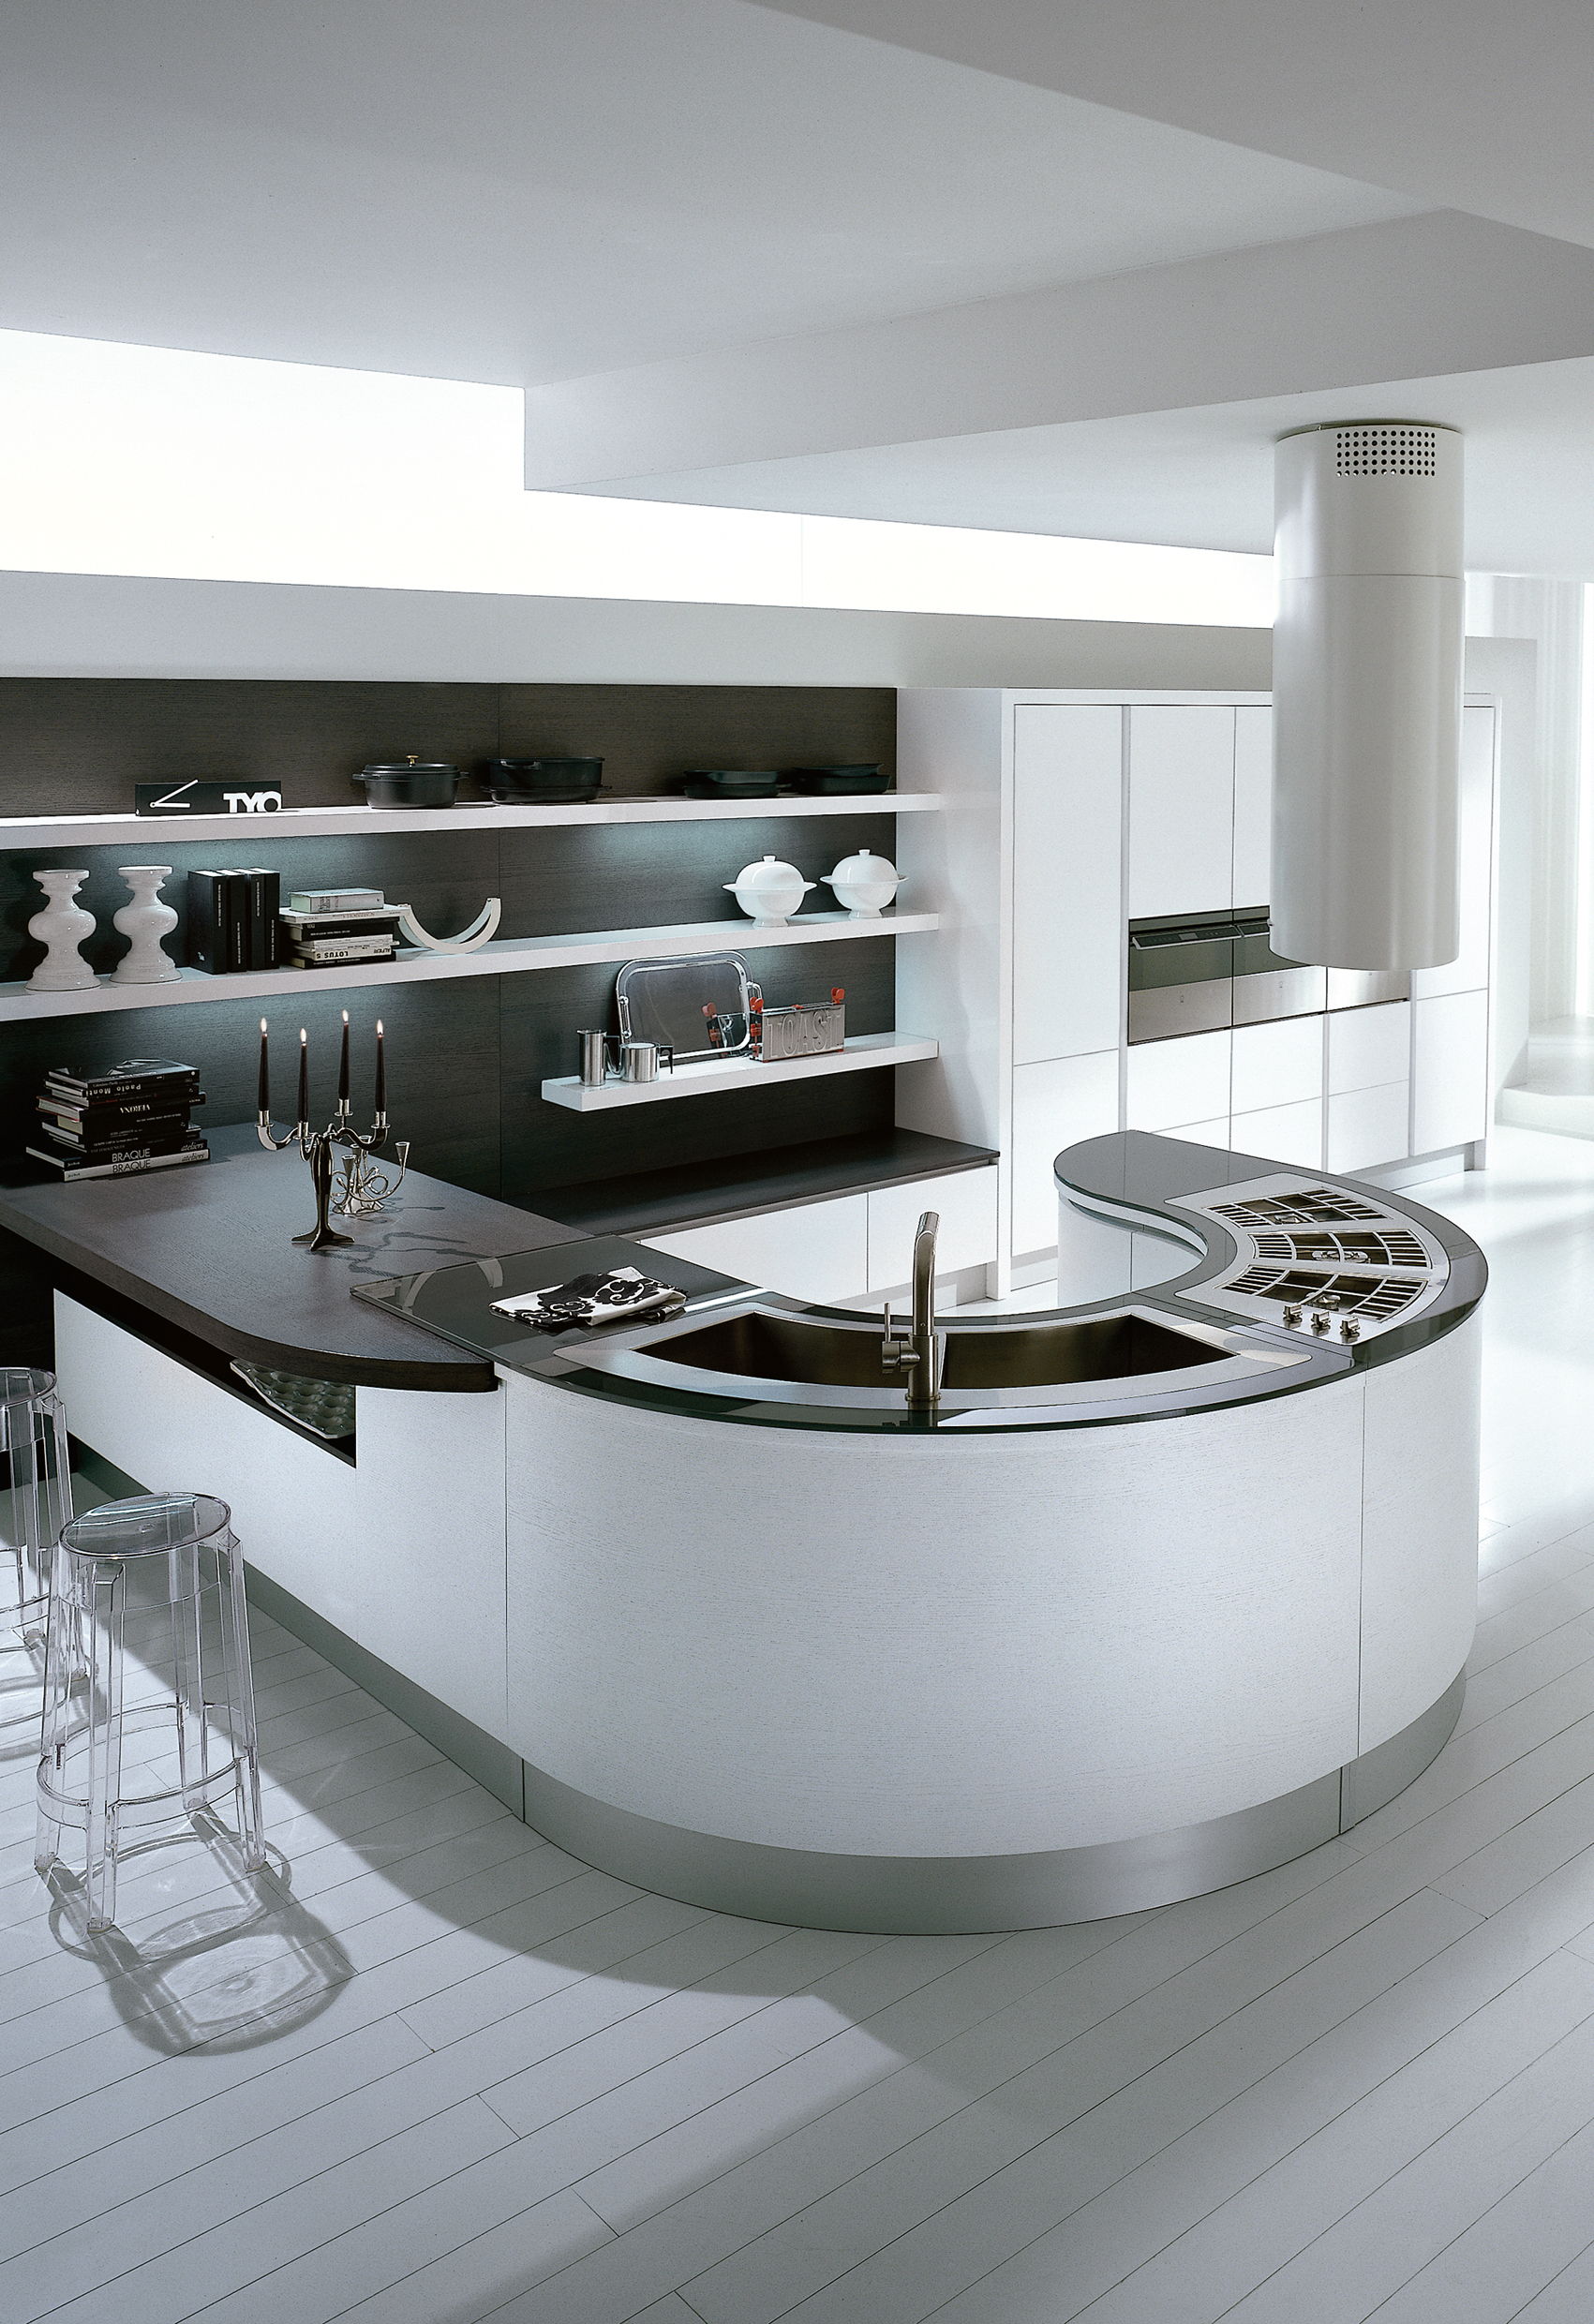 Pedini And Lida Cucina Ltd A Perfect Match